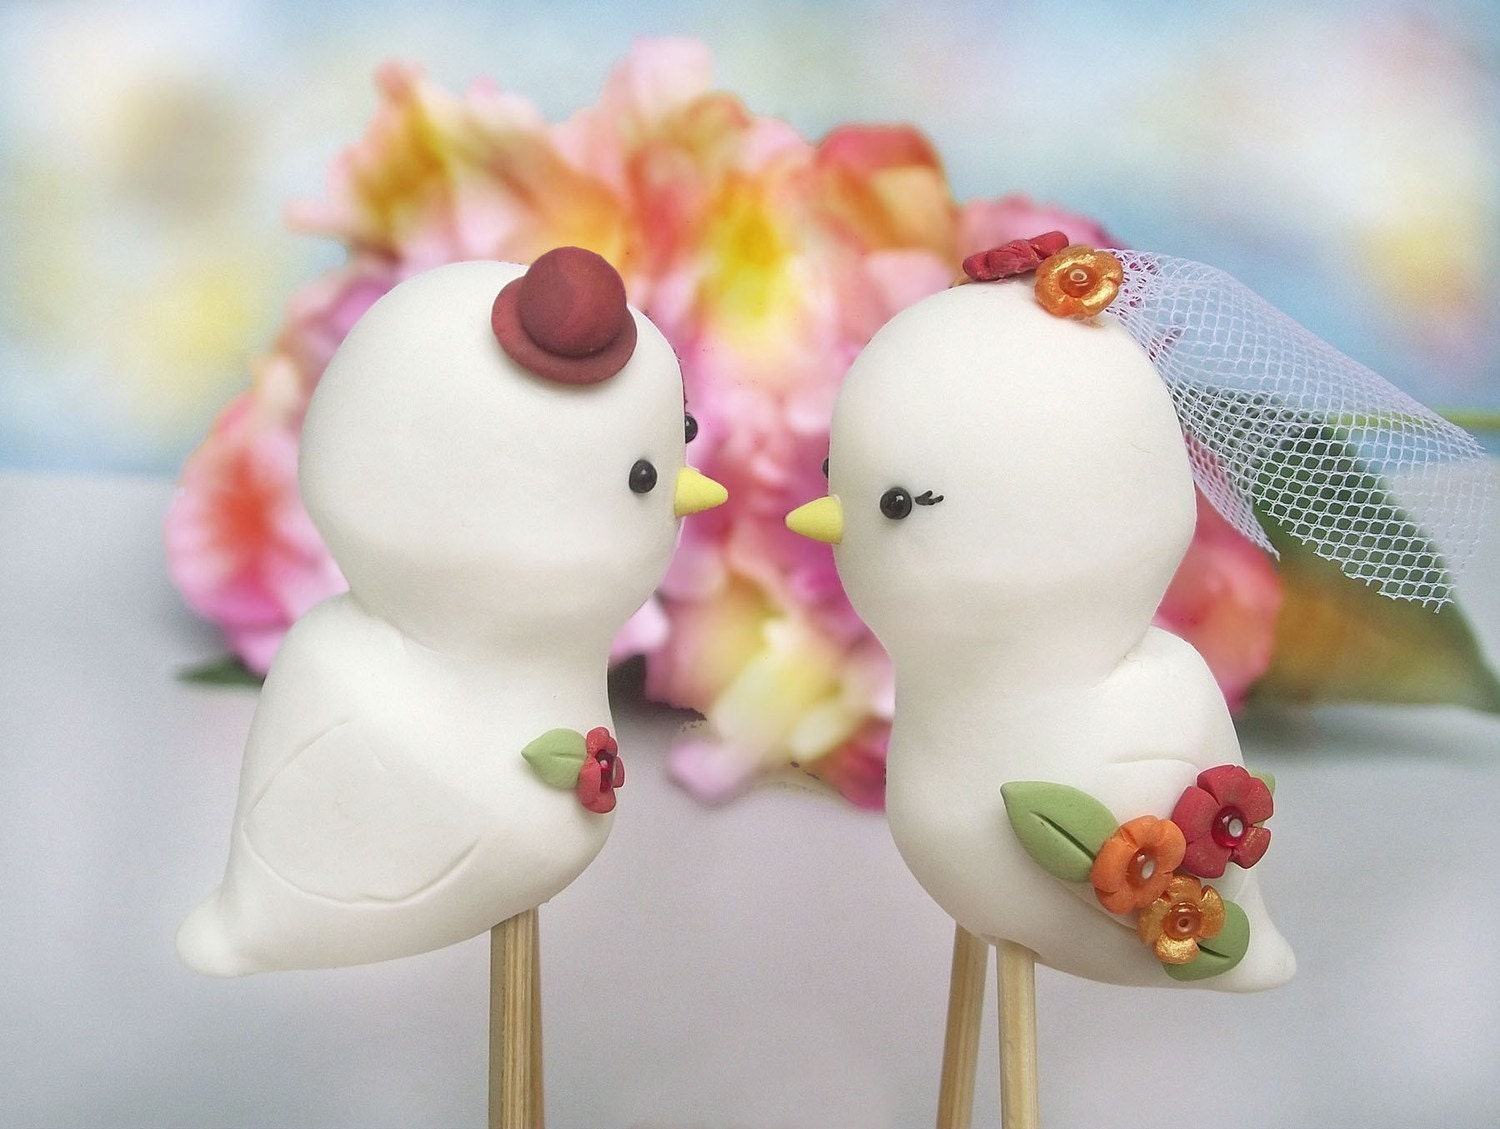 Cute Love birds wedding cake toppers with veil and tie